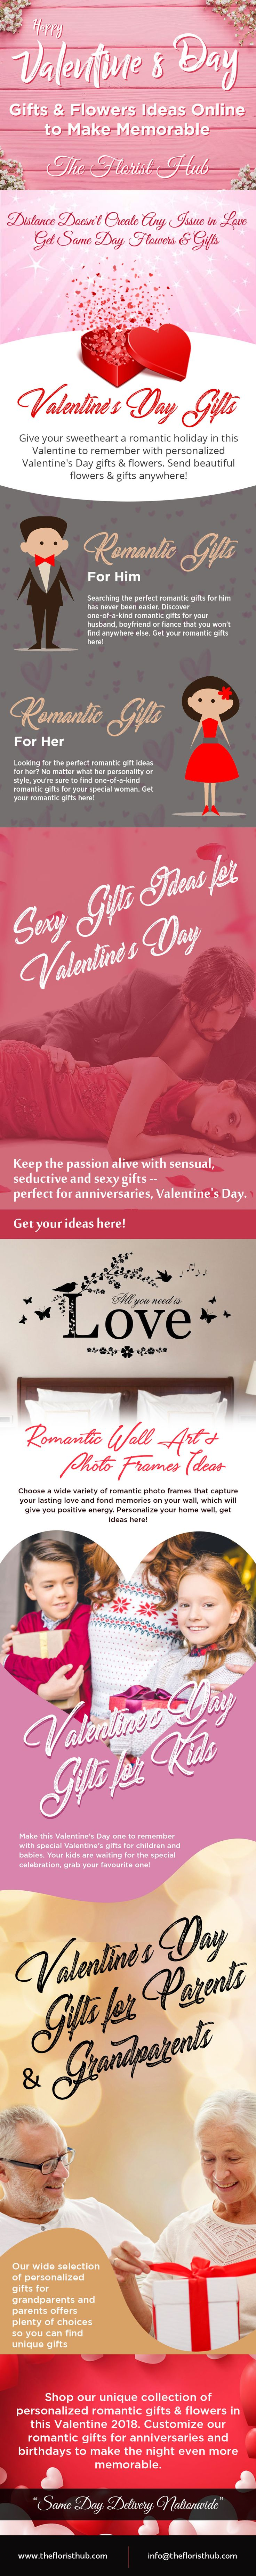 Valentine's day is here and lovebirds are busy in planning a surprise for their Partner. Buy & send flowers, teddy bears, gift baskets, cakes, chocolate bouquet & Valentine gifts available in USA, UK, Canada & Australia. Same day gifts & flowers delivery at your doorstep. This Valentine's day Celebrate love with us, here we are sharing some popular and loved Valentine's day gift idea for her.